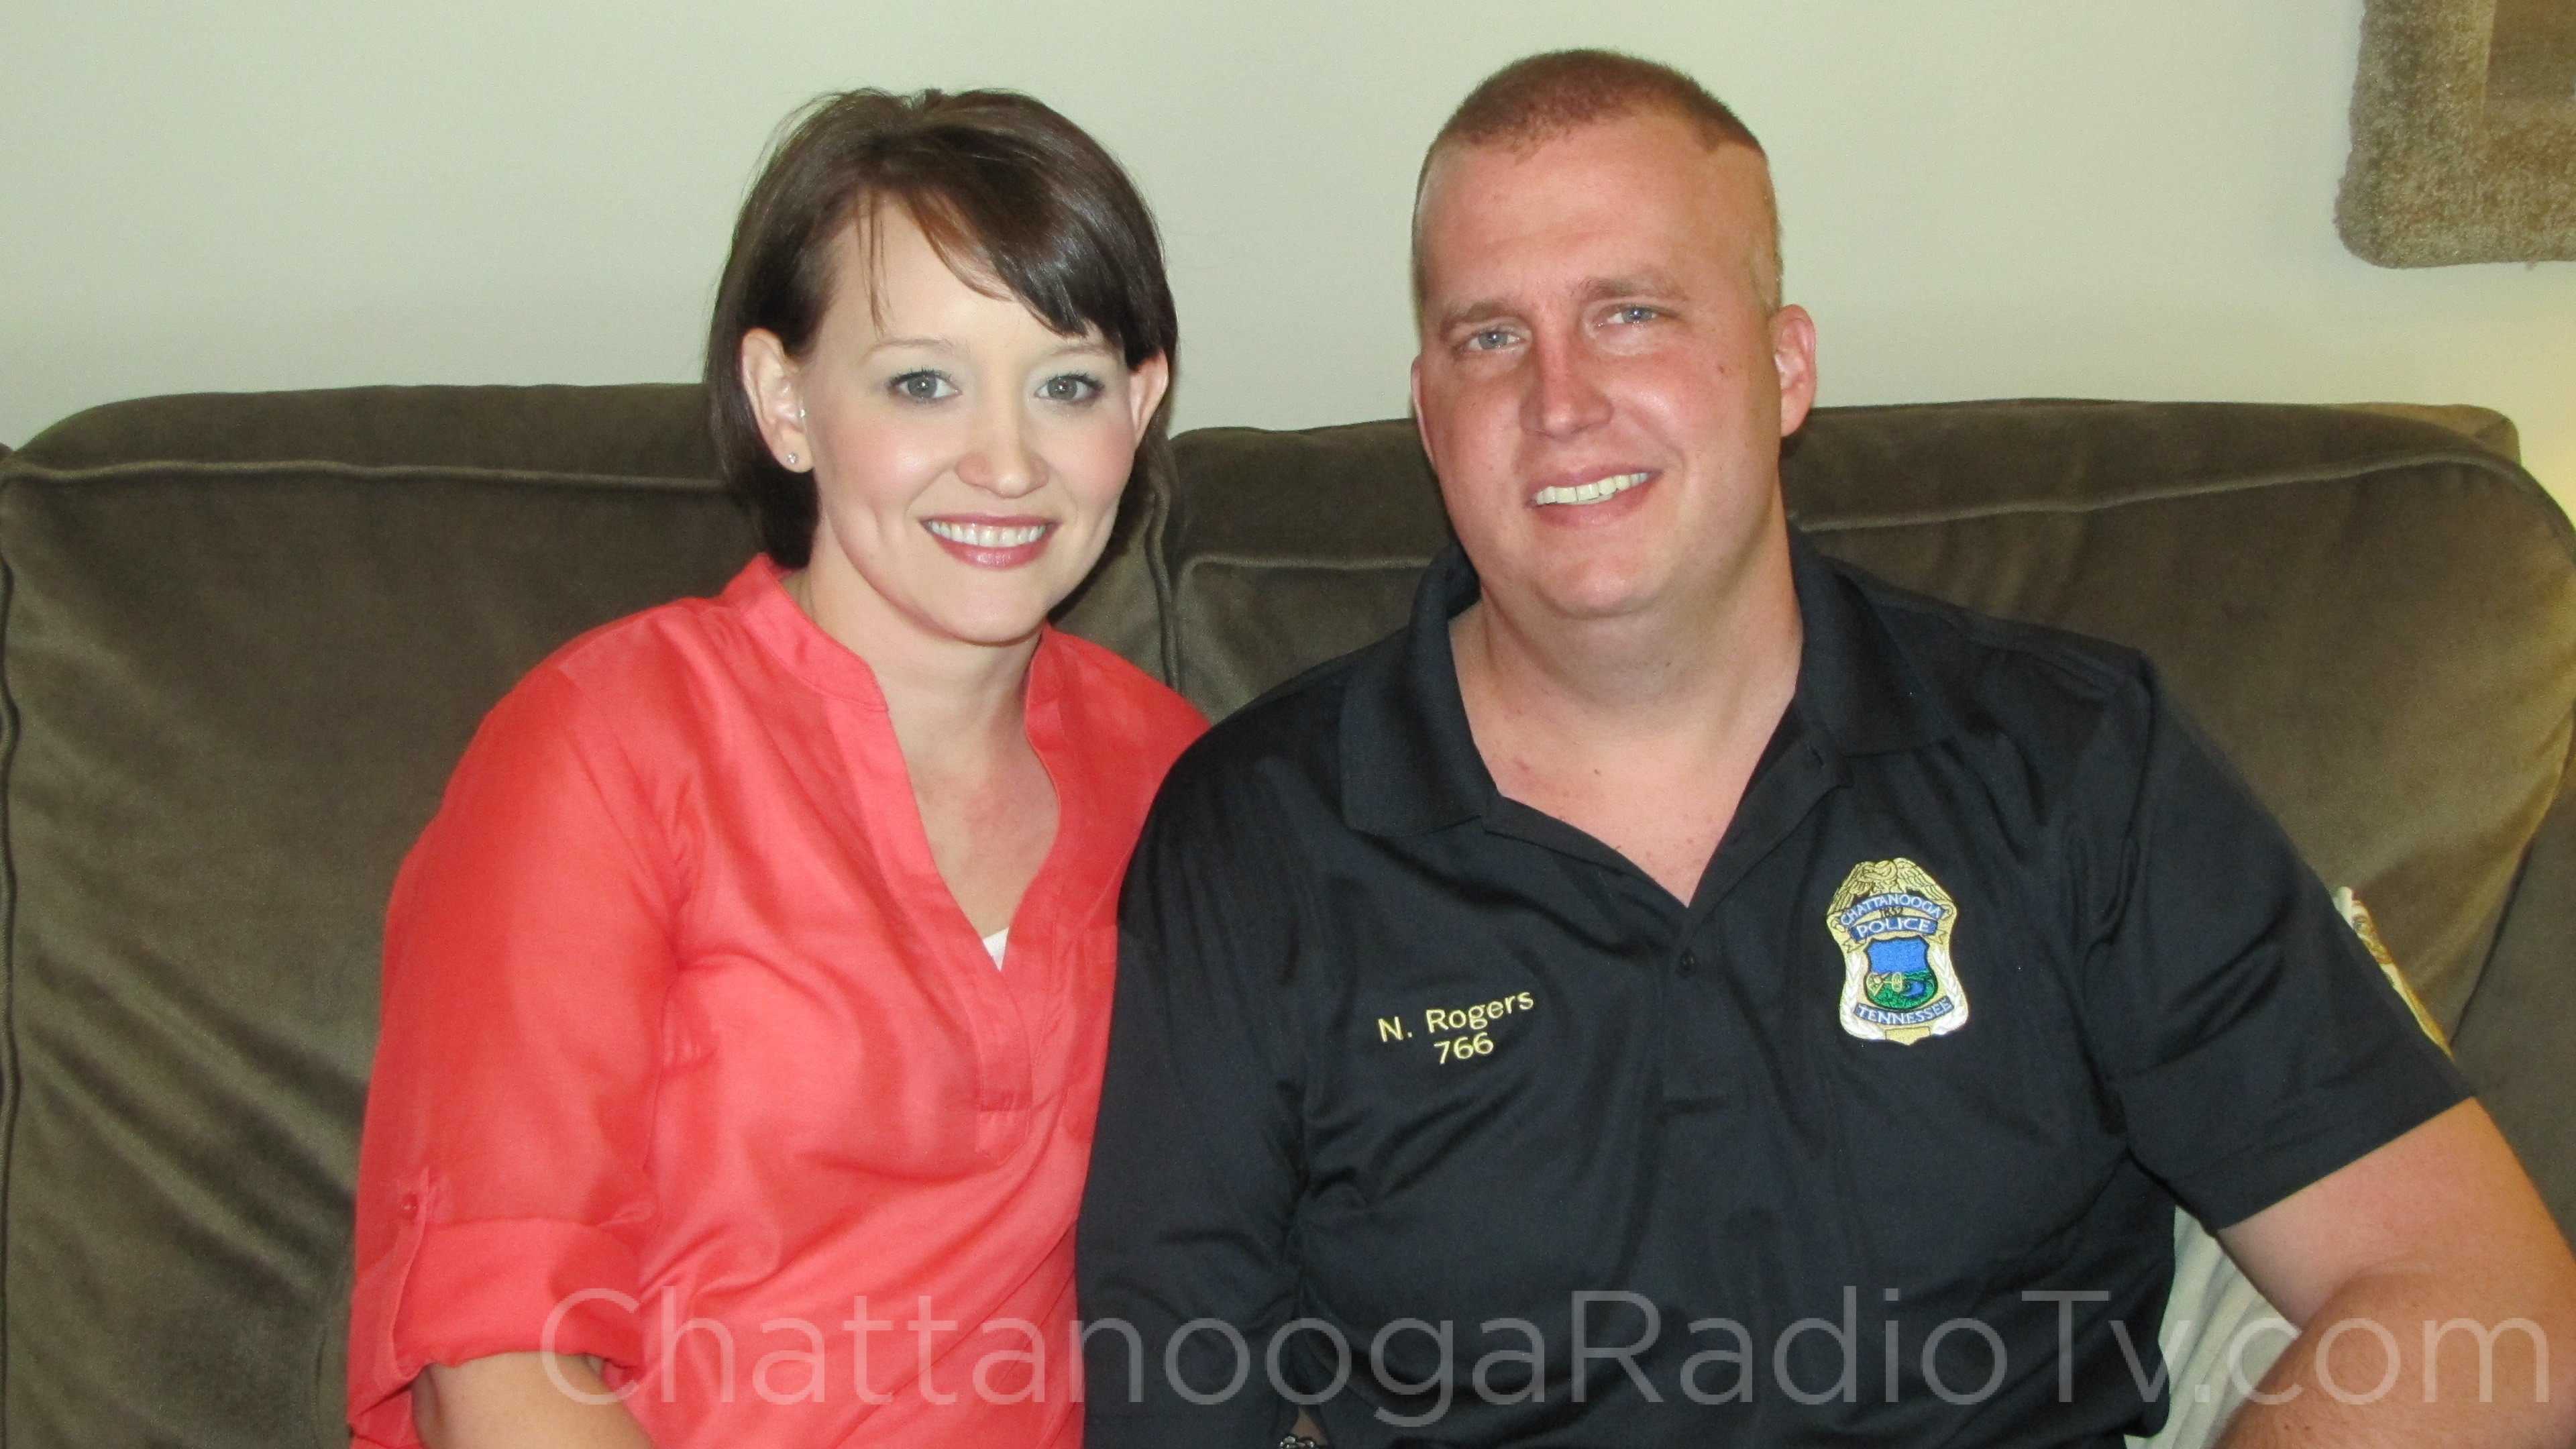 A tribute to Officer Nathan Rogers: an American hero - David